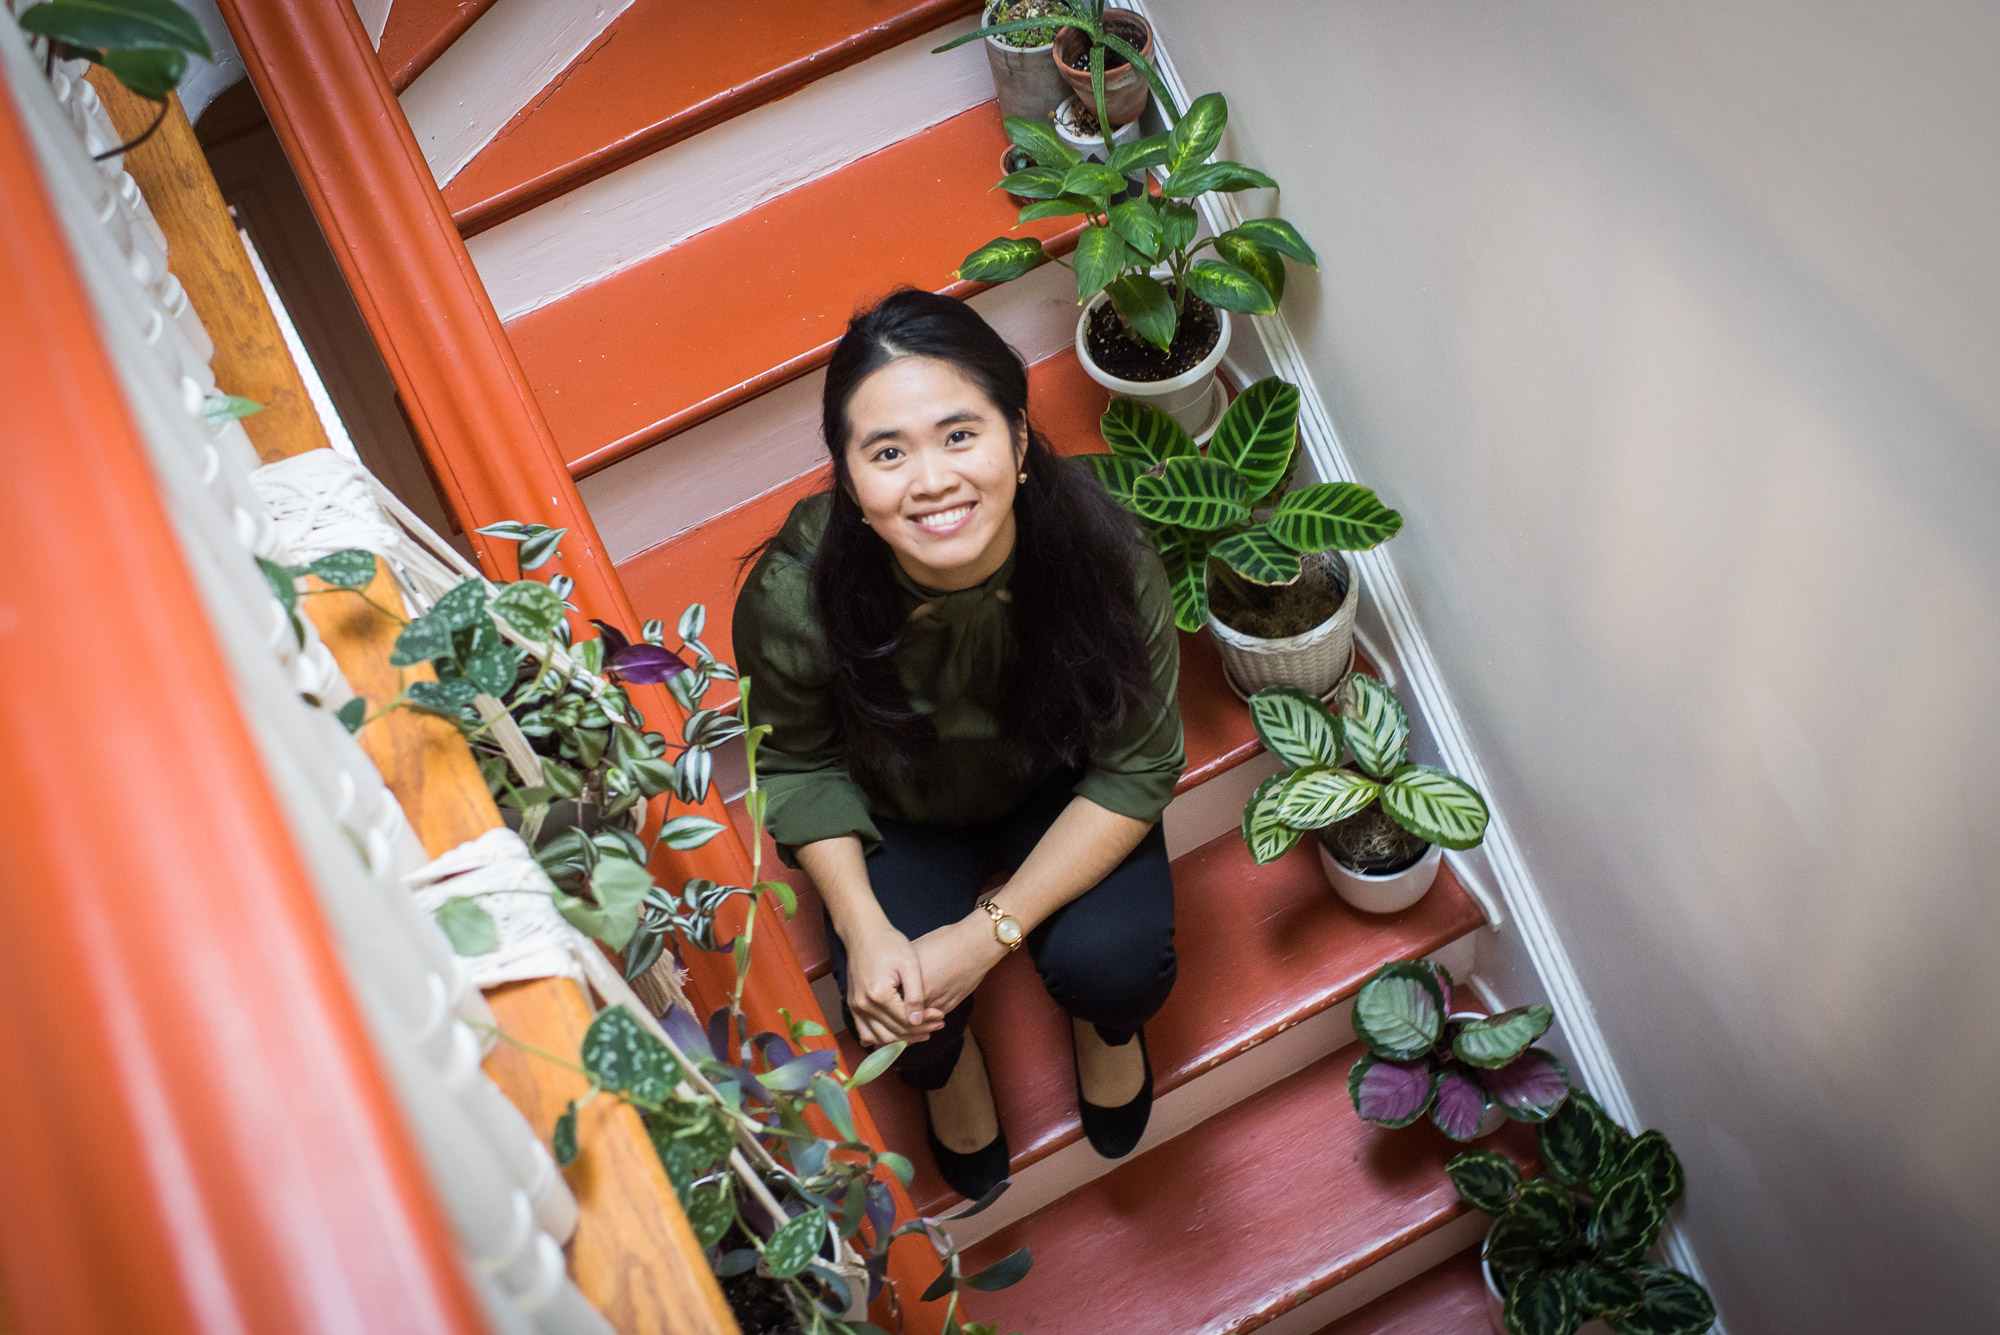 Minh-Thuy Nguyen sits on orange stairs lined with all of her plant babies